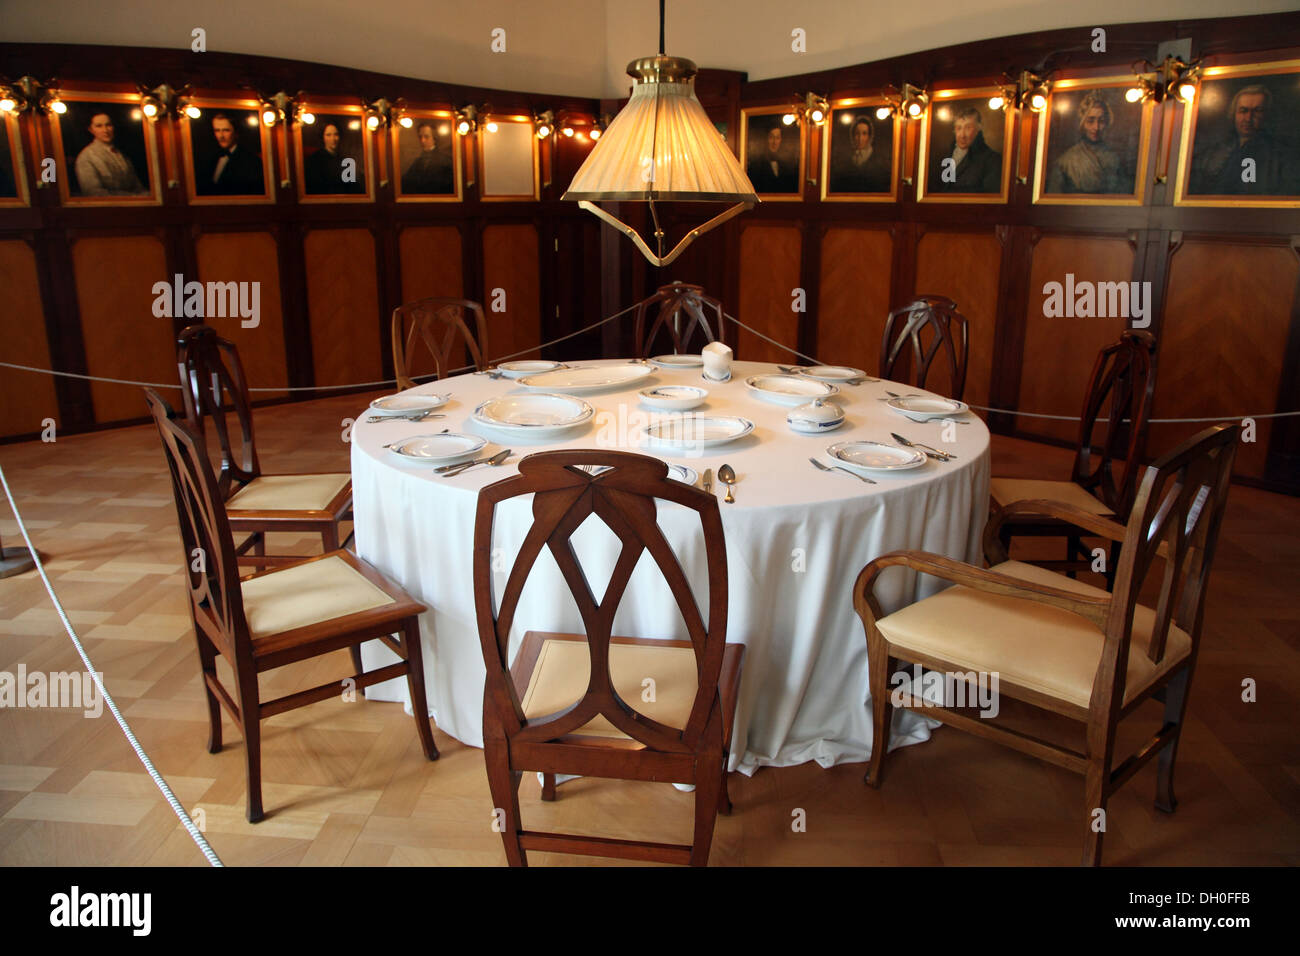 Villa Esche Dining Room Chemnitz Germany Stock Photo Royalty Free